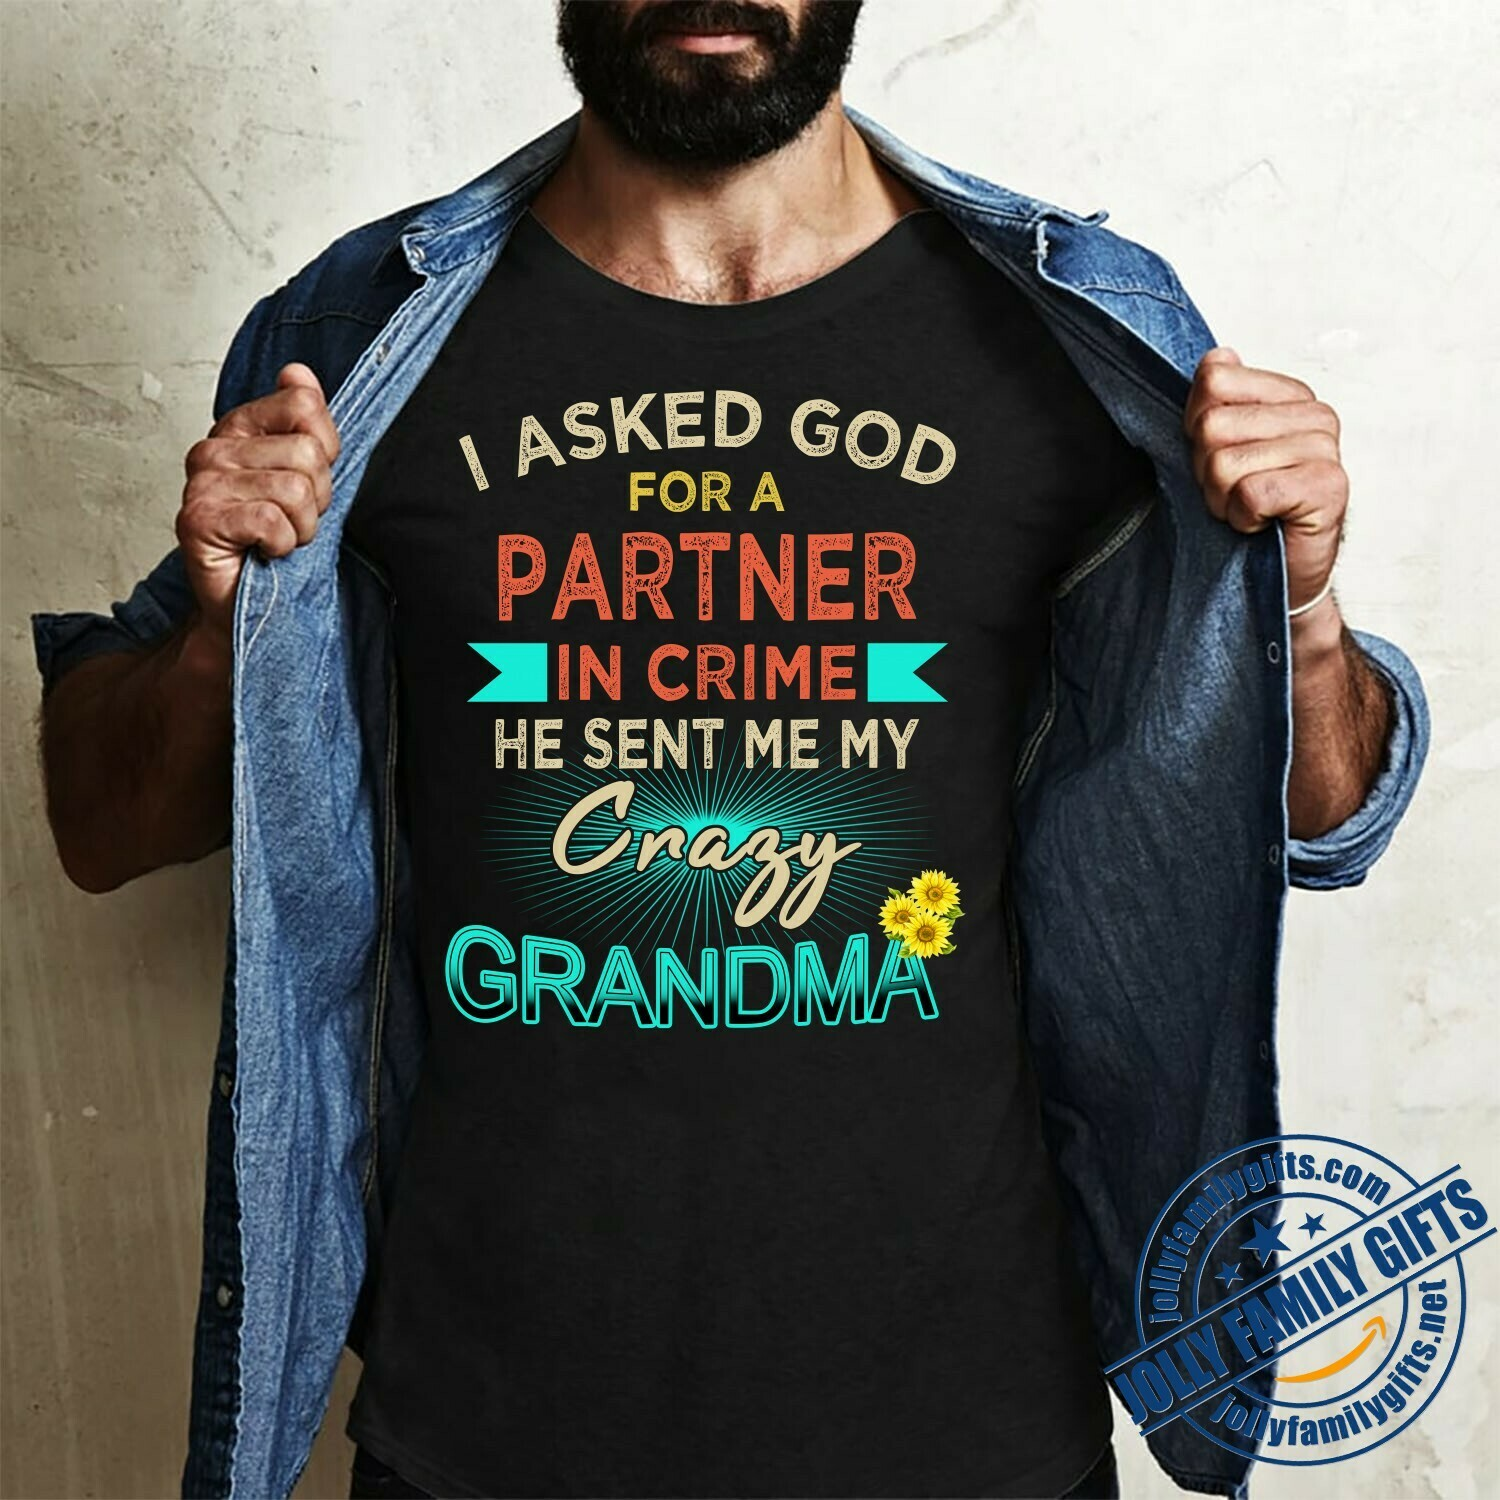 I Asked God for a Partner In Crime He Sent Me Crazy Grandma SunFlower for Women Mother Mama grandma Unisex T-Shirt Hoodie Sweatshirt Sweater Plus Size for Ladies Women Men Kids Youth Gifts Tee Jolly